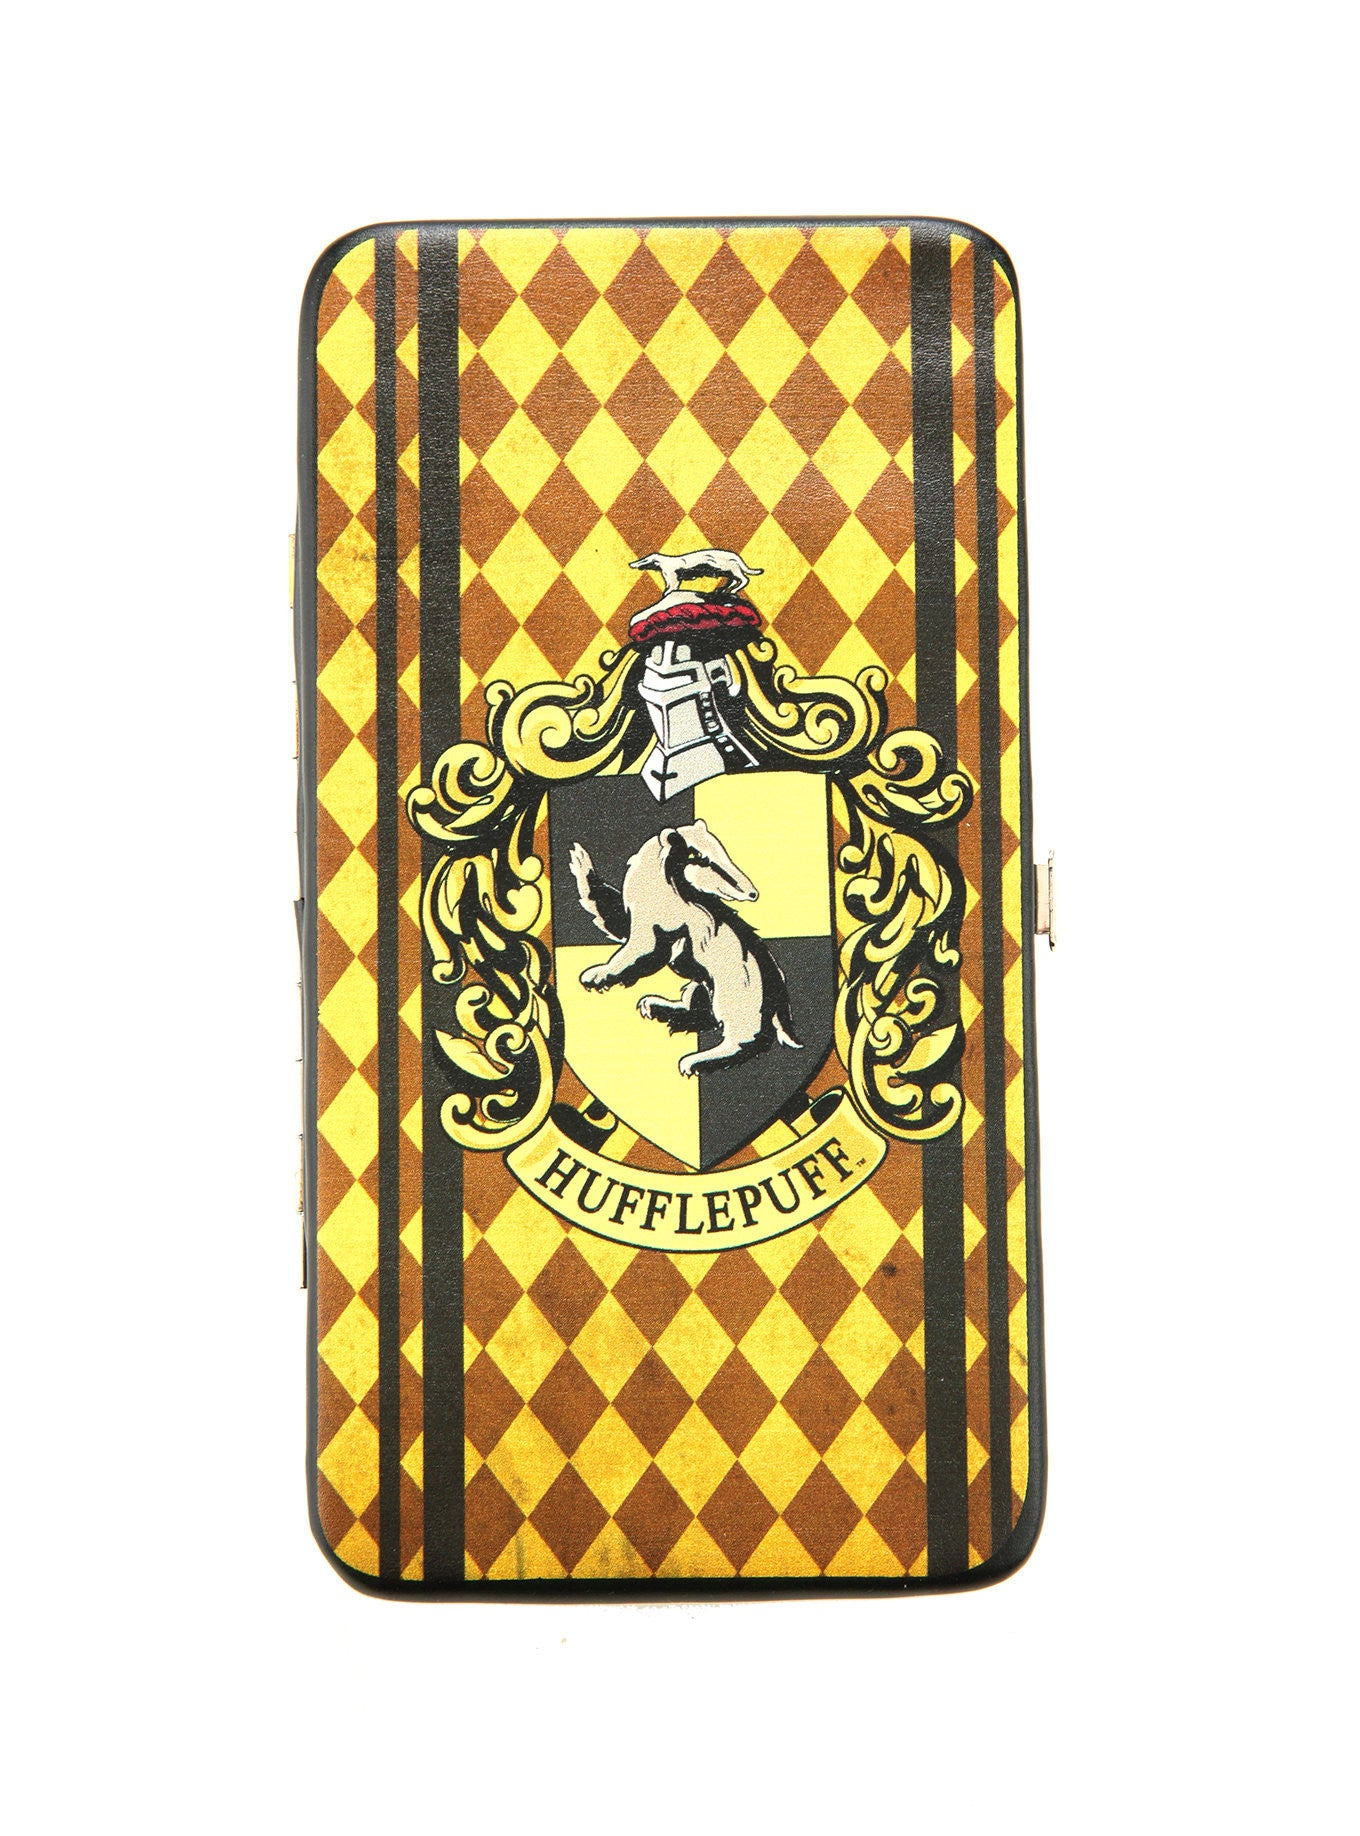 HARRY POTTER HUFFLEPUFF HOUSE CREST HINGE WALLET